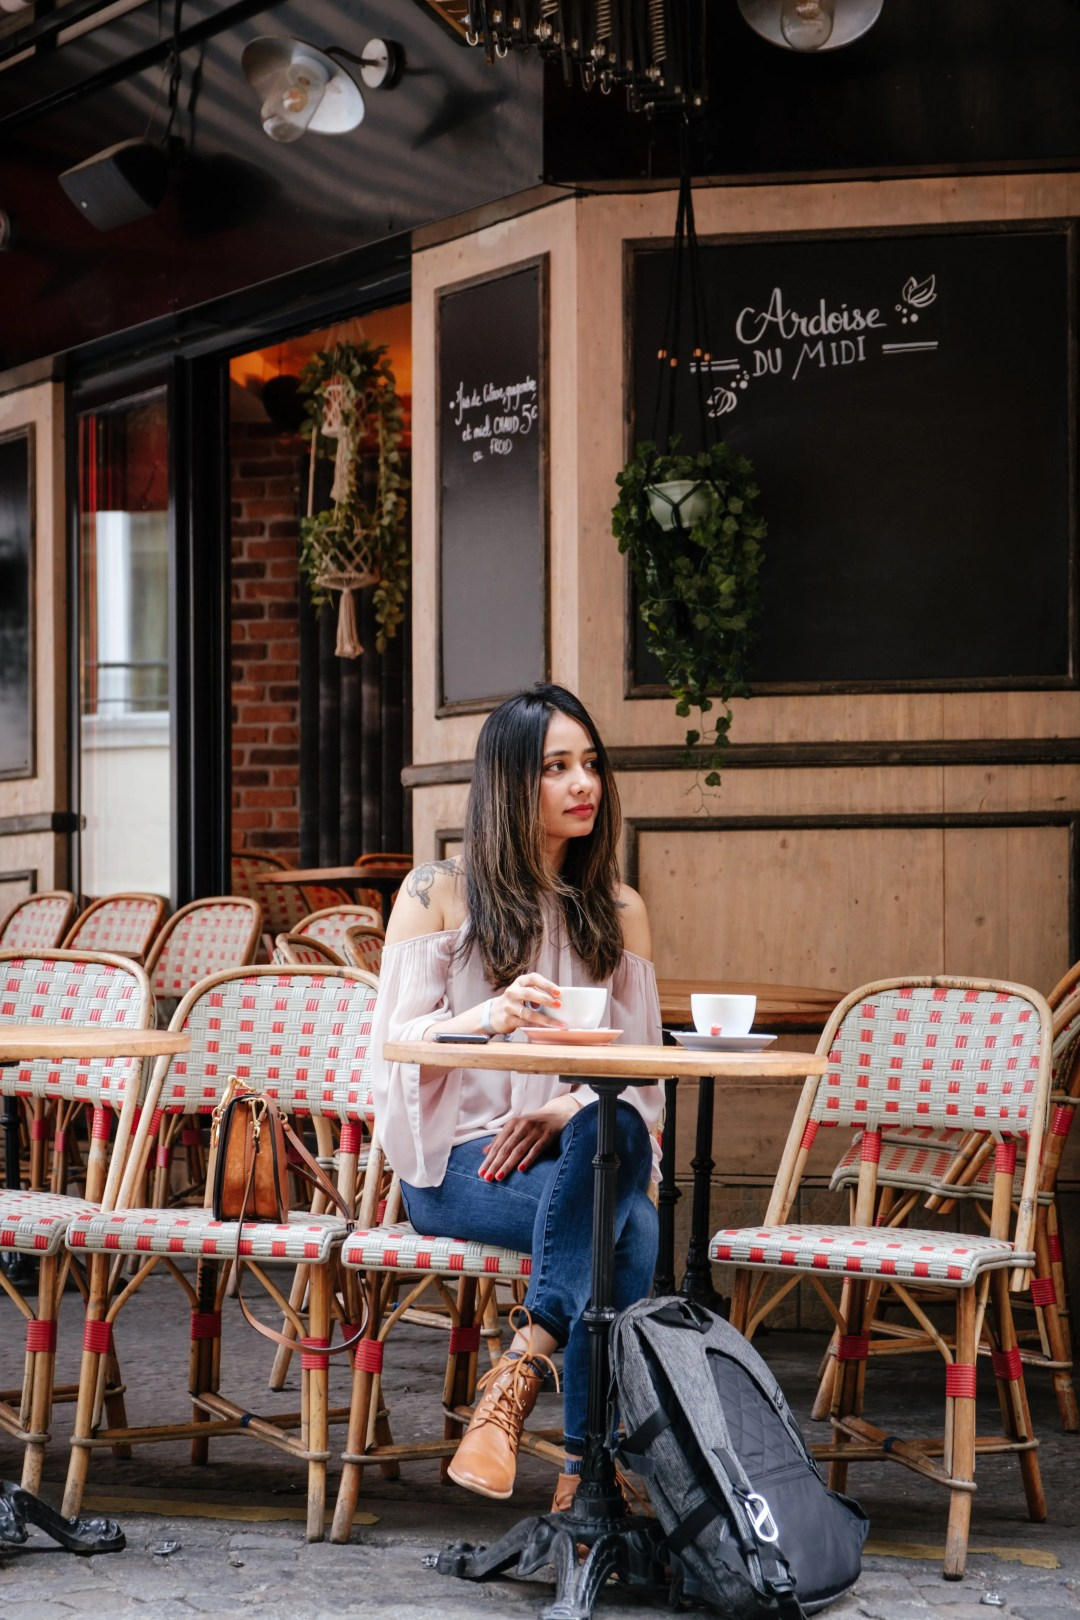 A woman sits in a coffee shop by herself with two cups of coffee. She has decided to start relationship counseling for singles in Dallas, TX with Rethink Therapy.